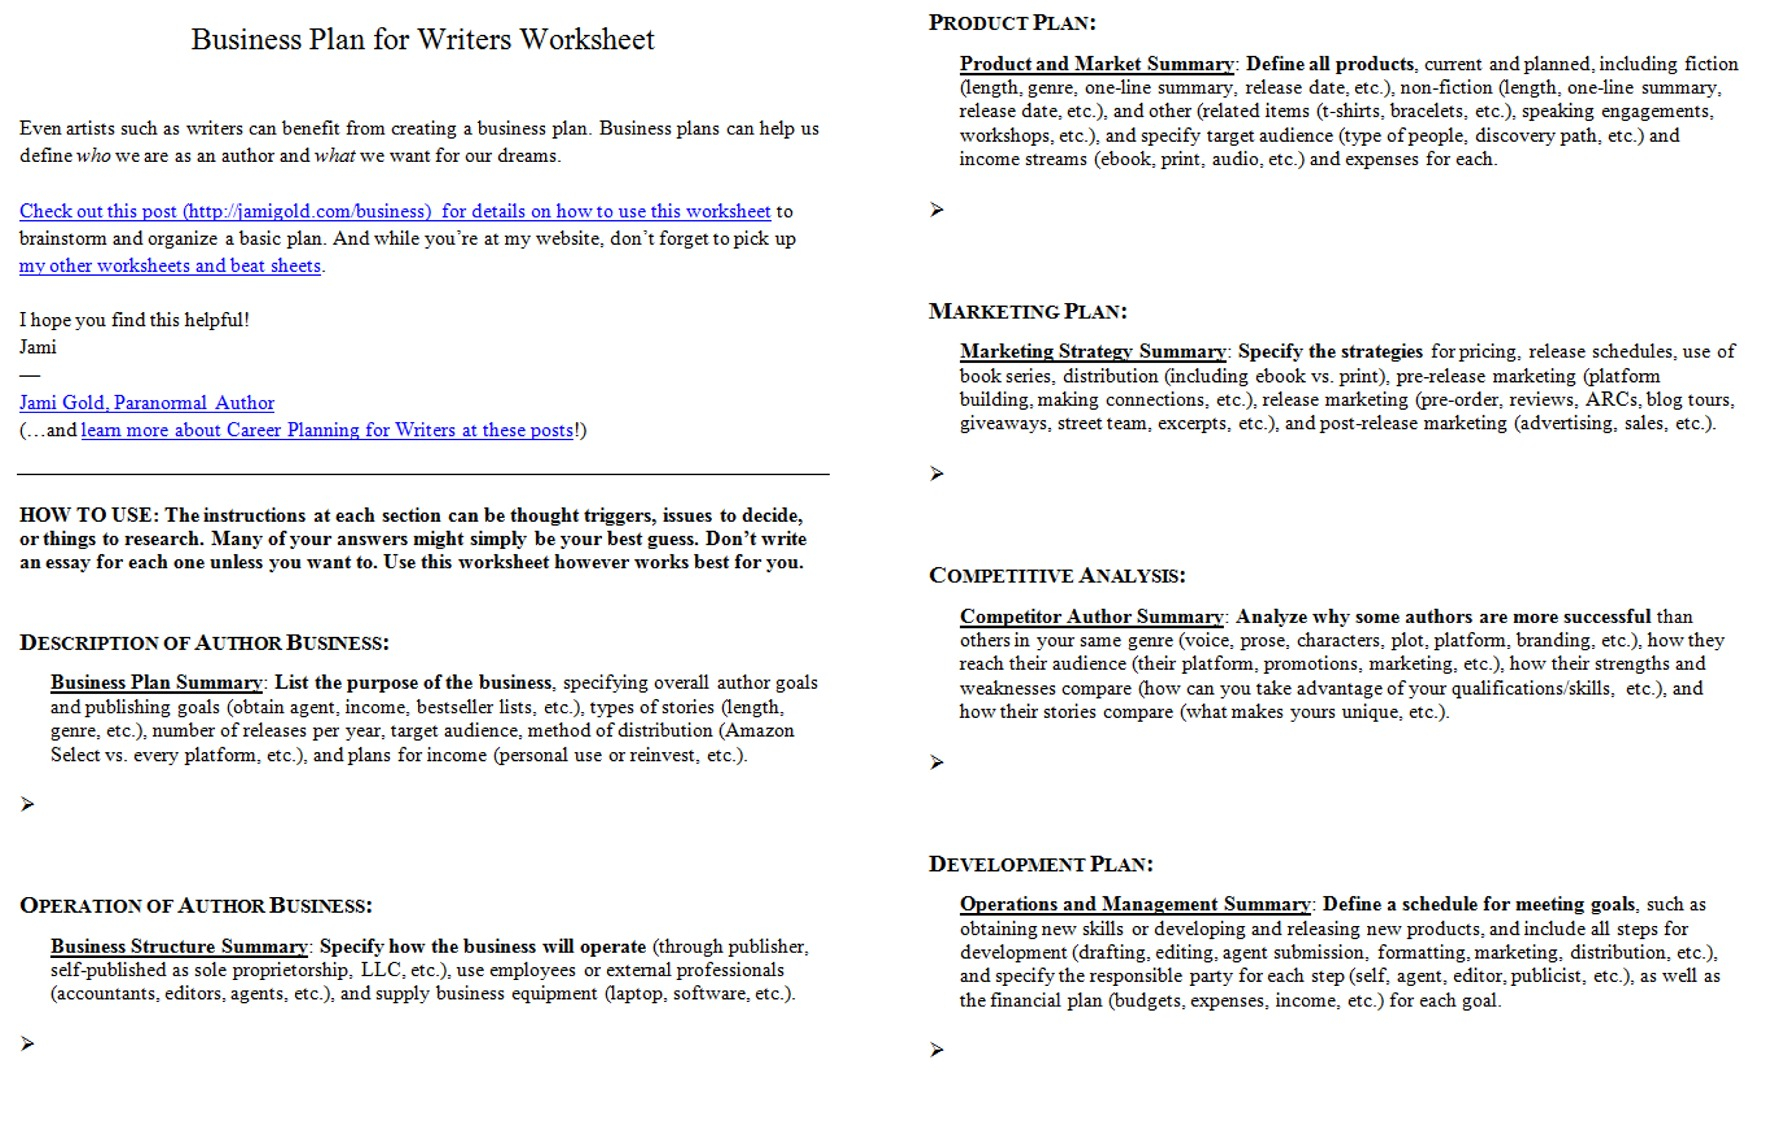 Proatmealus  Ravishing Worksheets For Writers  Jami Gold Paranormal Author With Handsome Screen Shot Of Both Pages Of The Business Plan For Writers Worksheet With Awesome Persuasive Devices Worksheet Also Handwriting Worksheets Ks In Addition Maths Worksheets And Answers And Making Judgments Worksheets As Well As Esl Preposition Worksheet Additionally Grade  Word Problems Worksheets From Jamigoldcom With Proatmealus  Handsome Worksheets For Writers  Jami Gold Paranormal Author With Awesome Screen Shot Of Both Pages Of The Business Plan For Writers Worksheet And Ravishing Persuasive Devices Worksheet Also Handwriting Worksheets Ks In Addition Maths Worksheets And Answers From Jamigoldcom